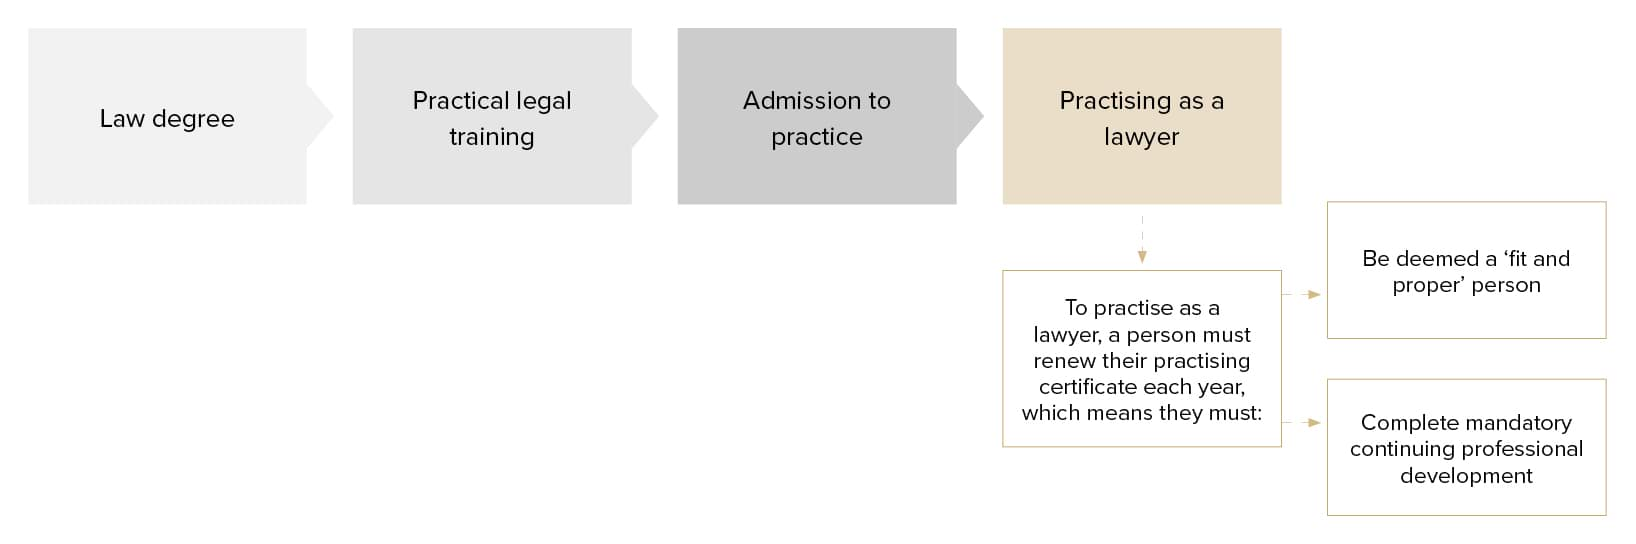 Figure 15.2- Requirements to practise as a lawyer